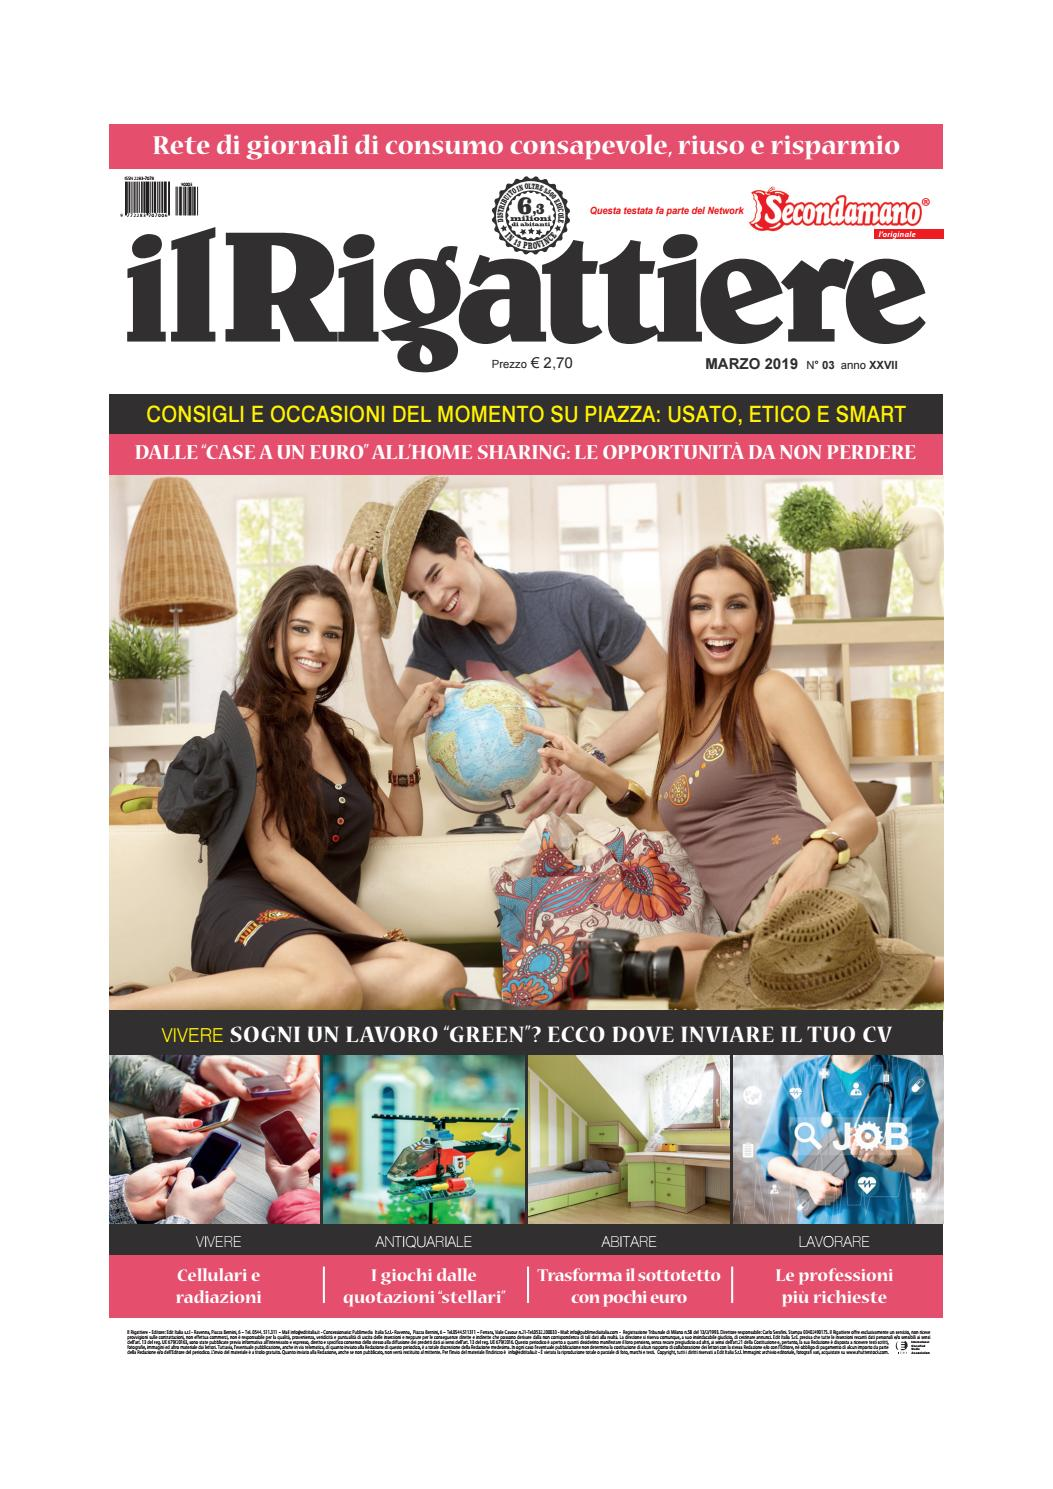 b56c1a799326d7 Il Rigattiere marzo 2019 by Edit Italia S.r.l. - issuu